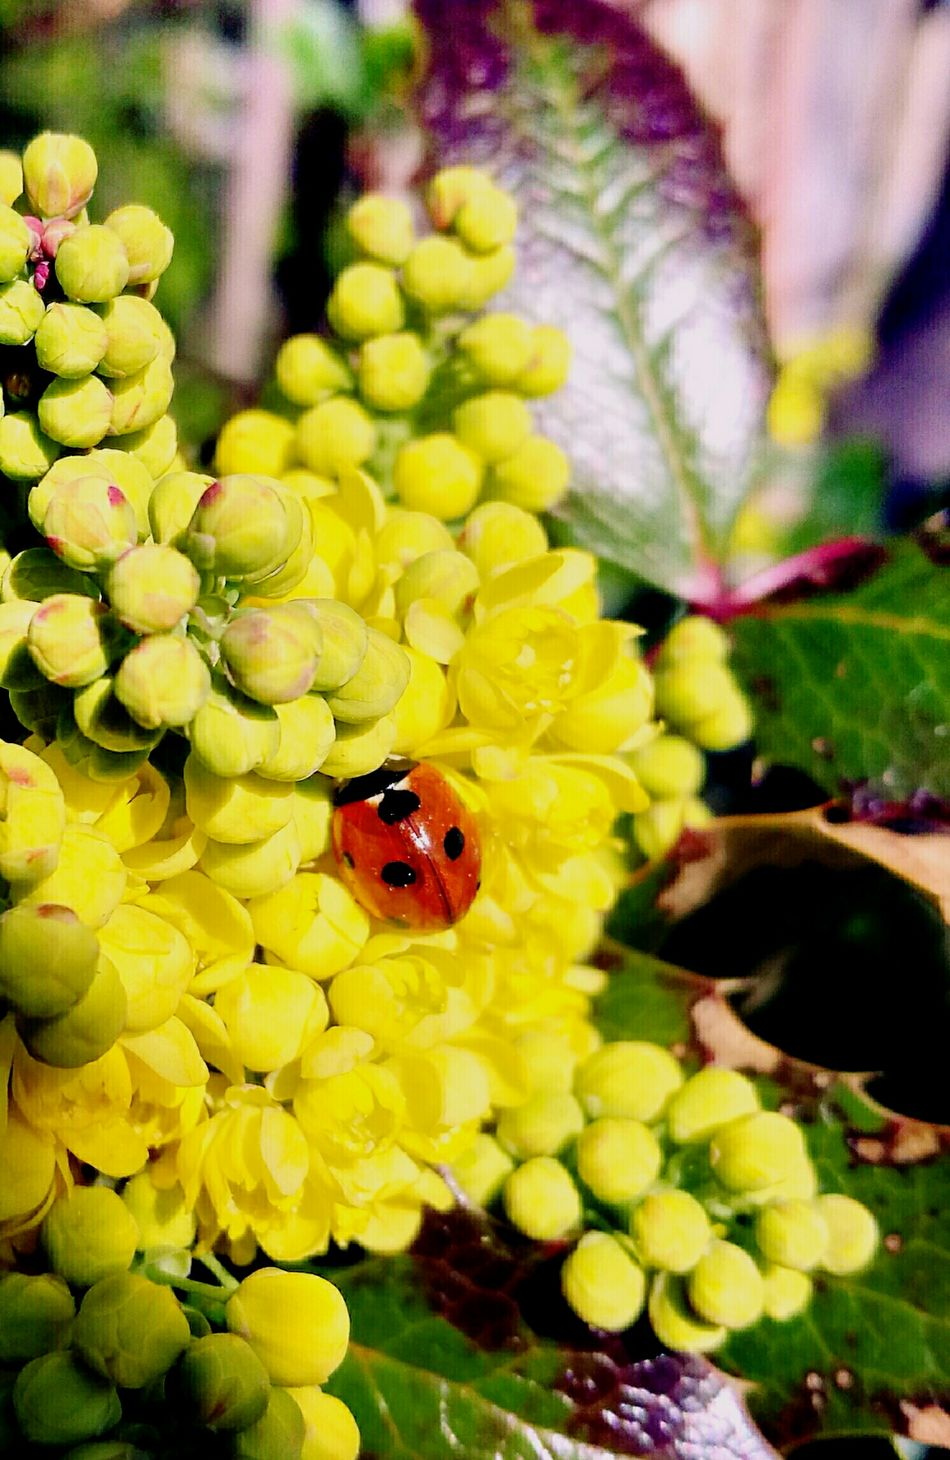 Flower Insect One Animal Nature Beauty In Nature Petal Growth Plant Nature Close-up Animals In The Wild Focus On Foreground Yellow Ladybug Ladybug🐞 Ladybeetle HuaweiP9 Huawei P9 Leica Huaweiphotography HuaweiP9Photography